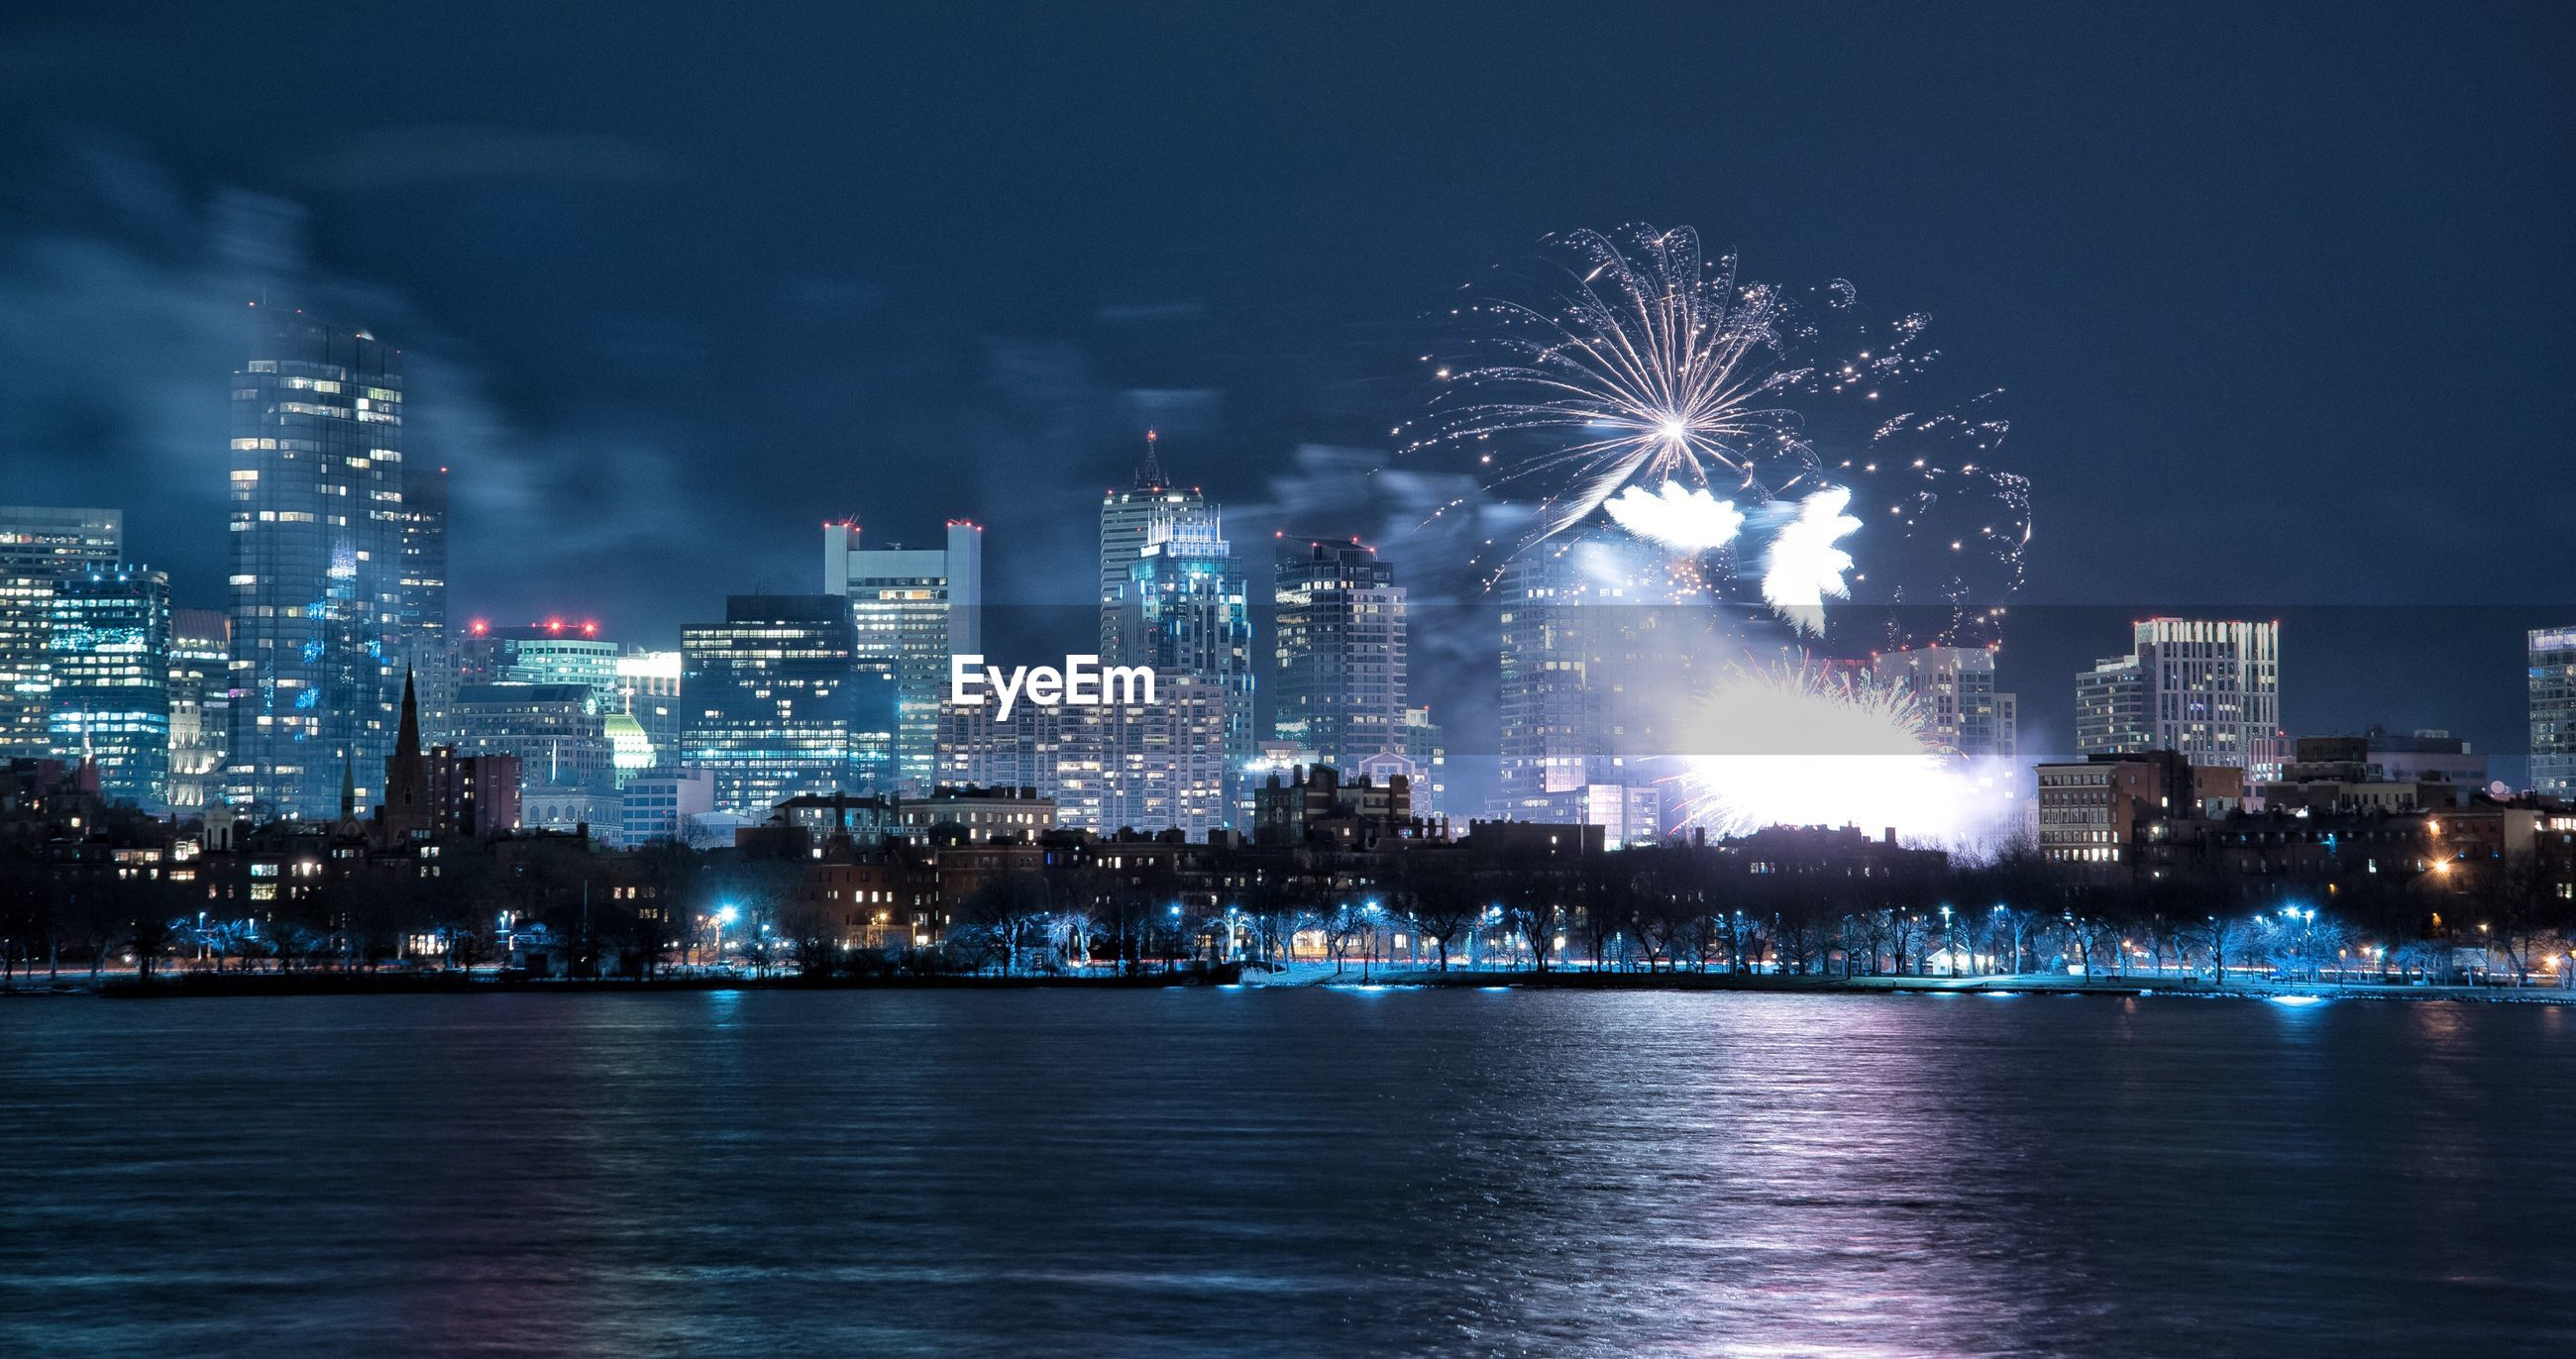 Firework display over city by river at night